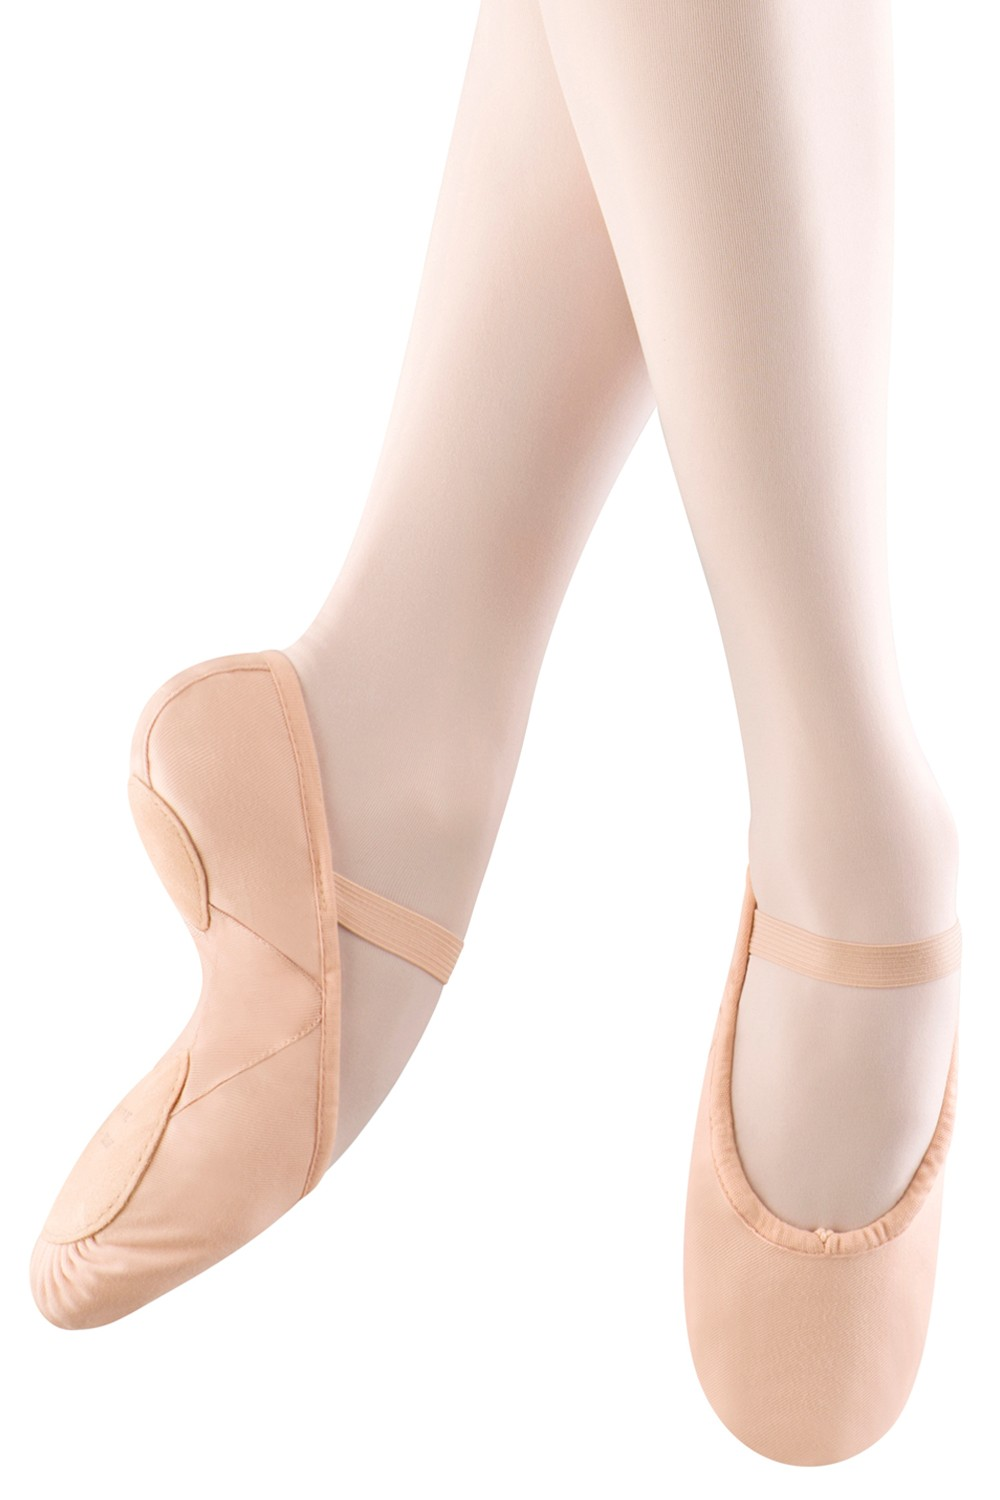 Prolite Ii Canvas Girls Girl's Ballet Shoes